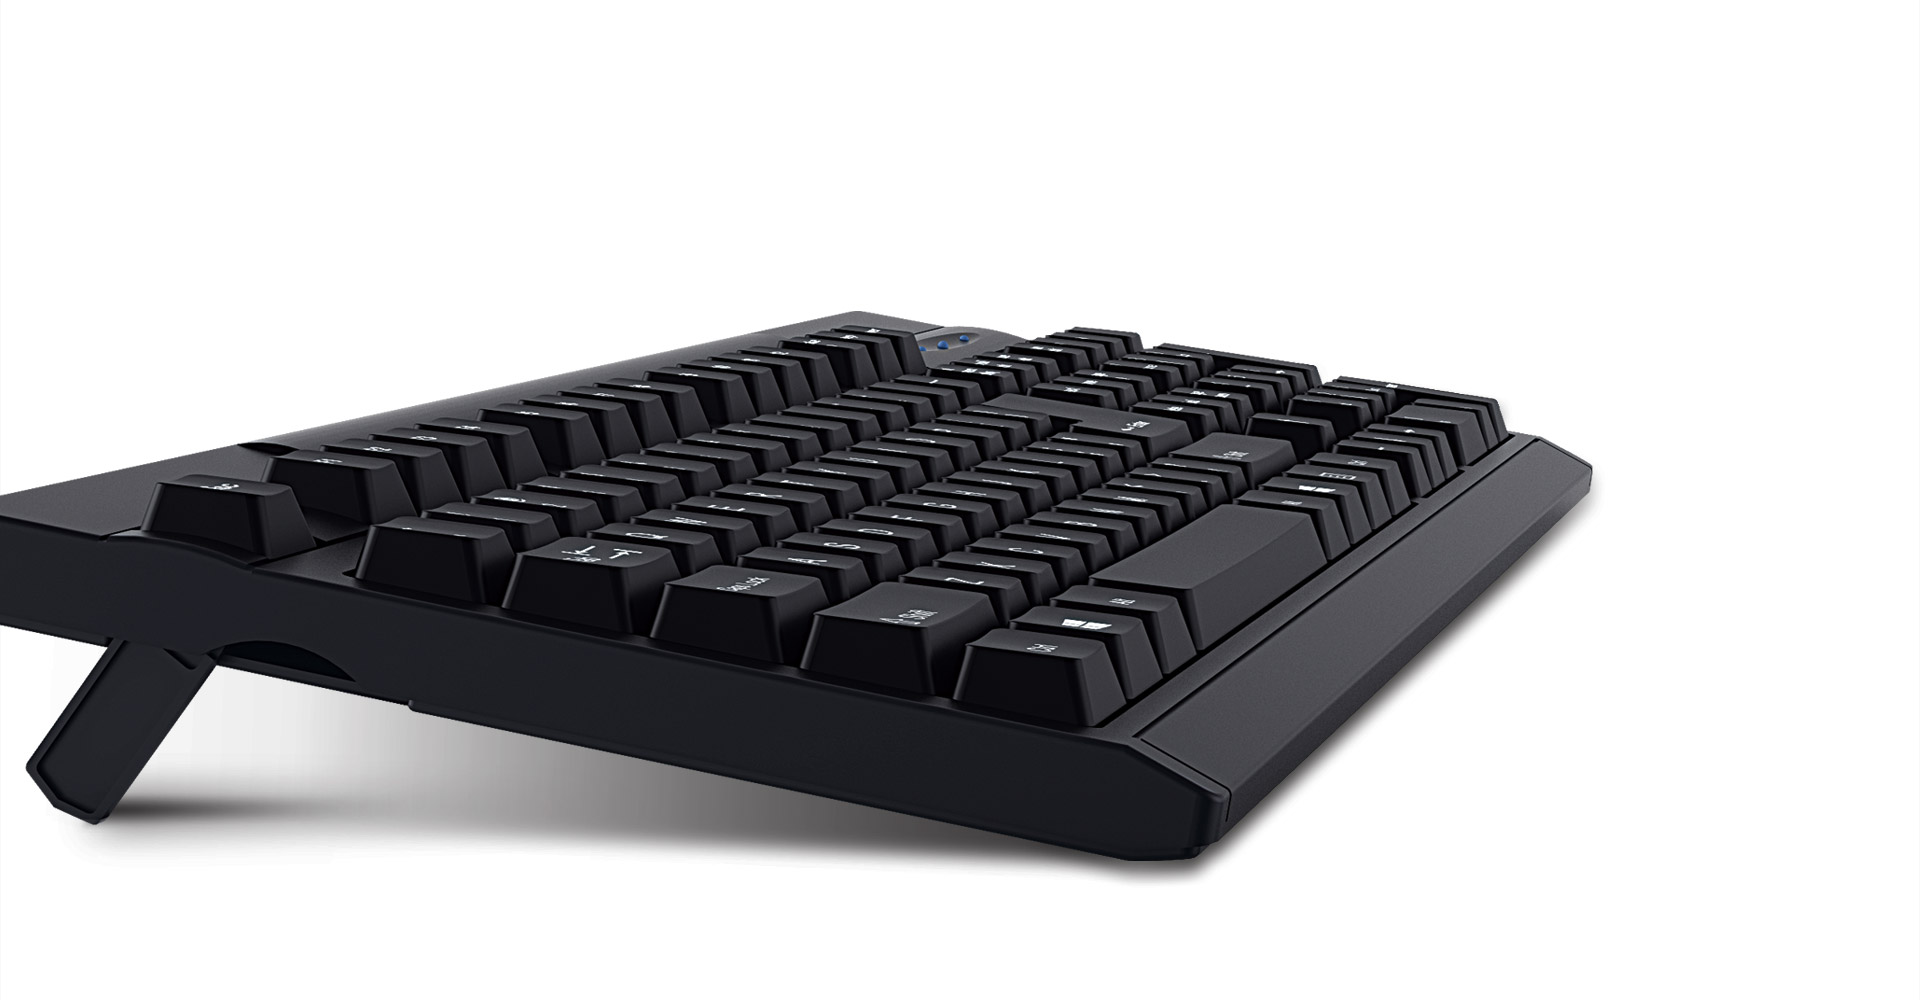 genius-keyboard-kb-125